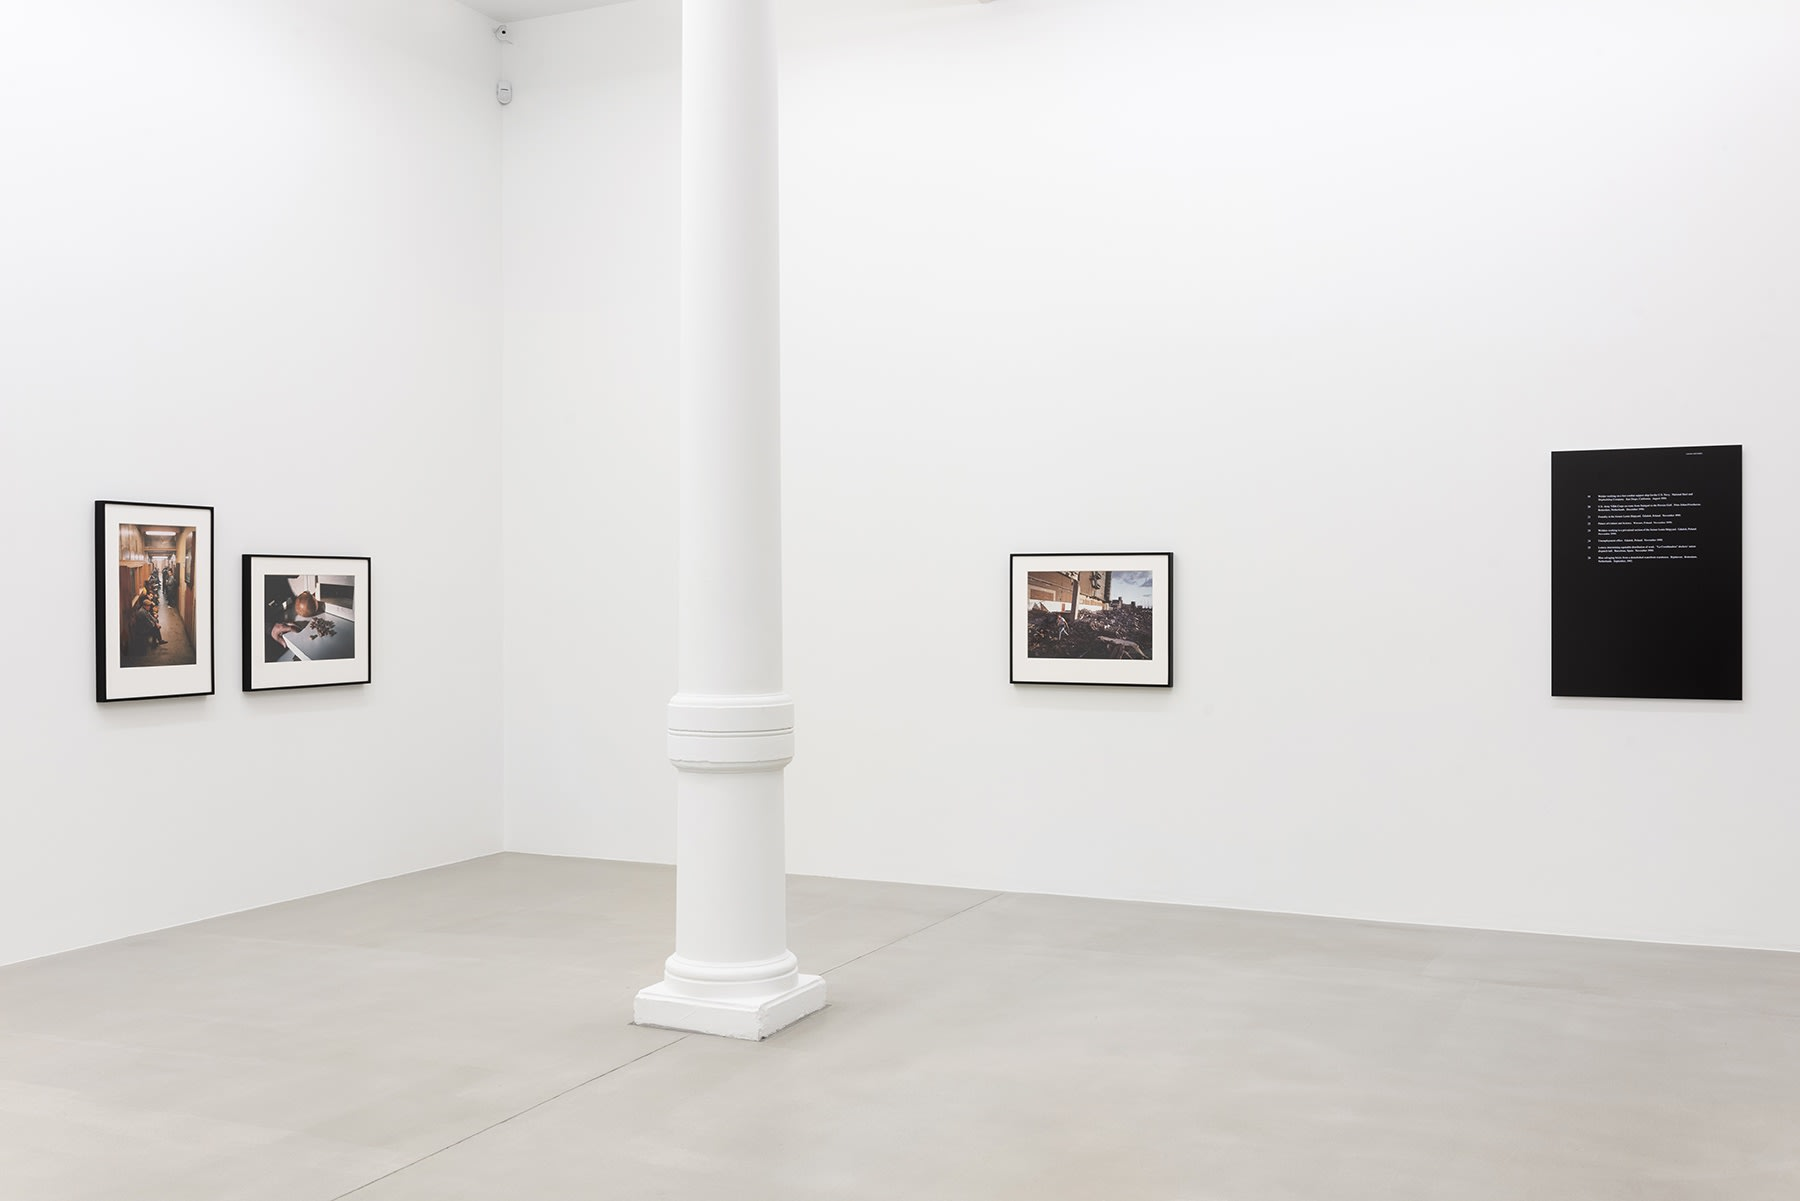 Four small photographs on gallery wall with a pillar between them.